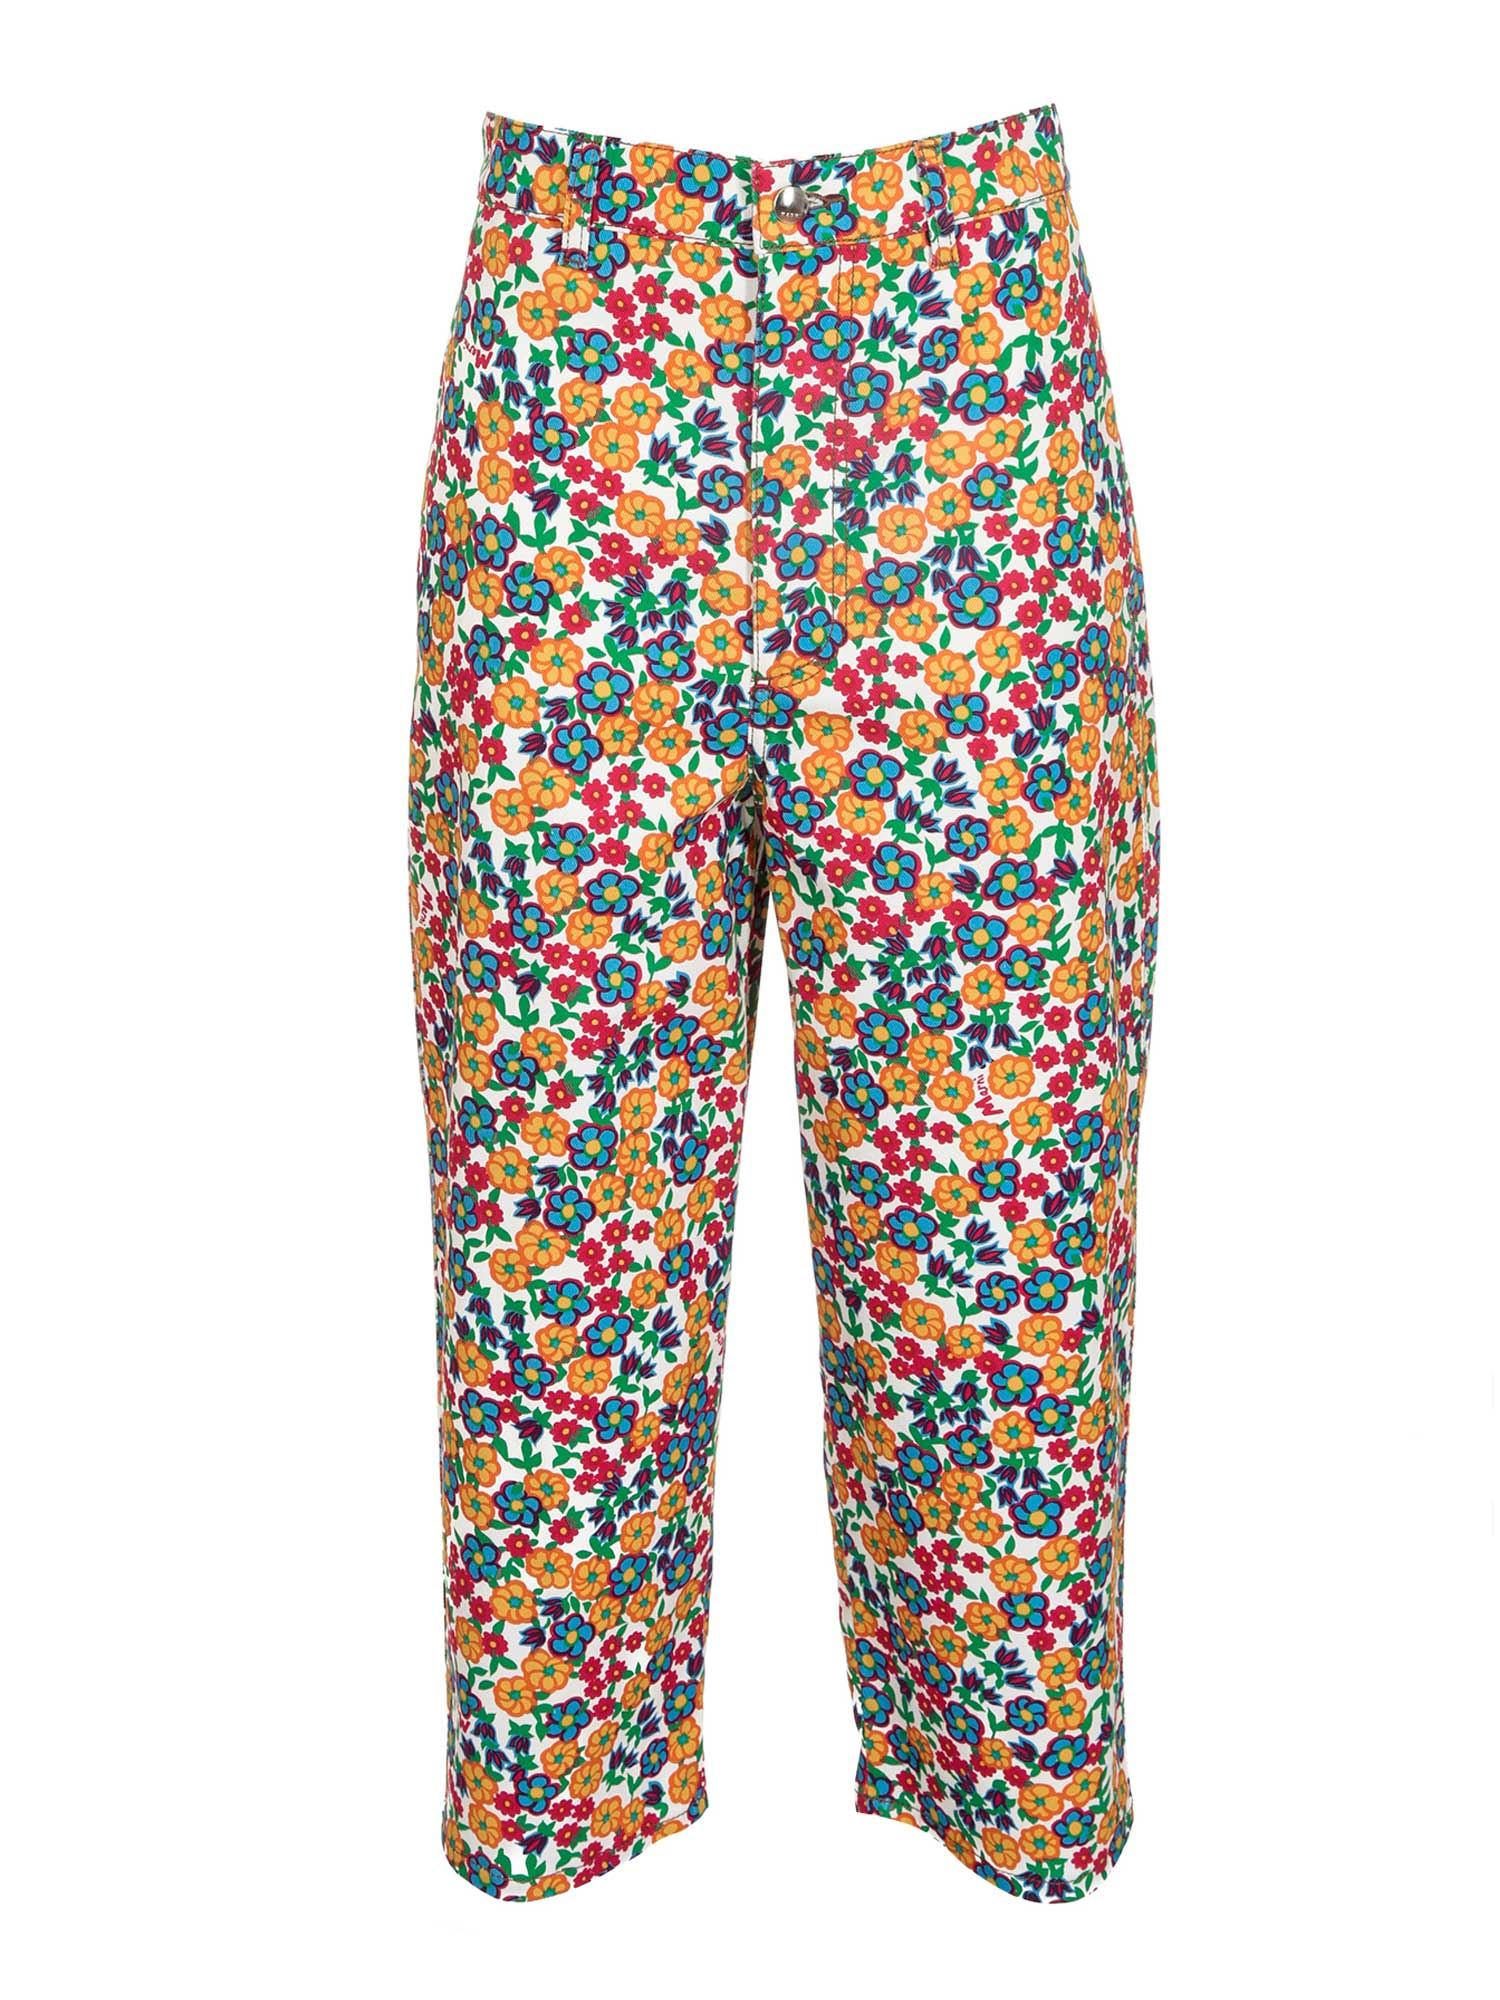 Marni WIDE FLORAL PANTS